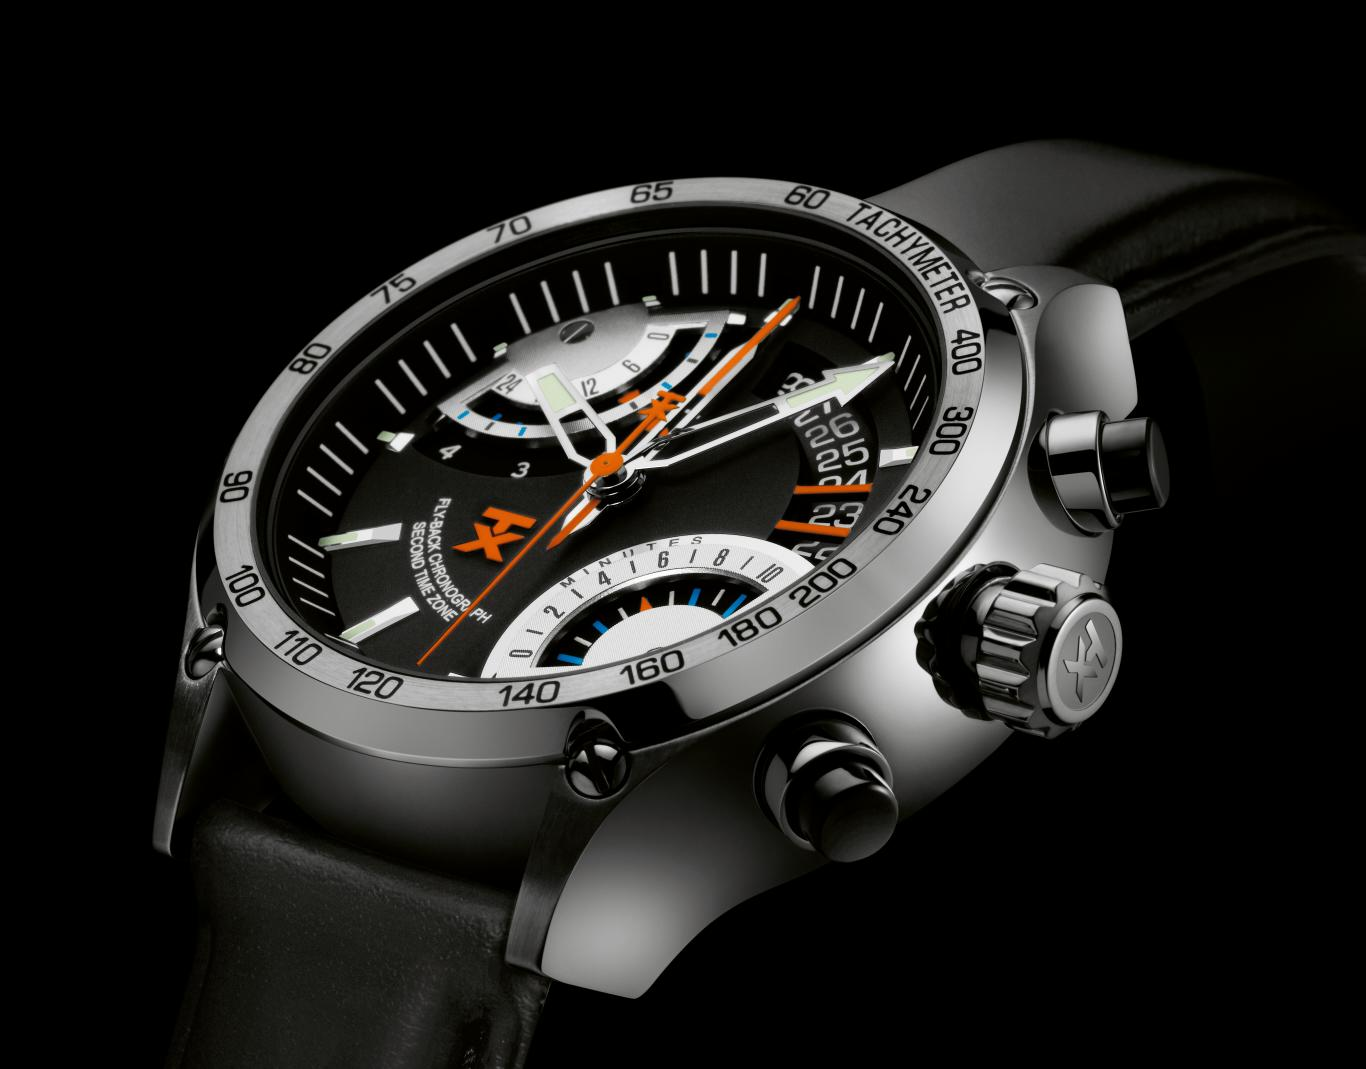 TX 650 GT Fly-back Chronograph